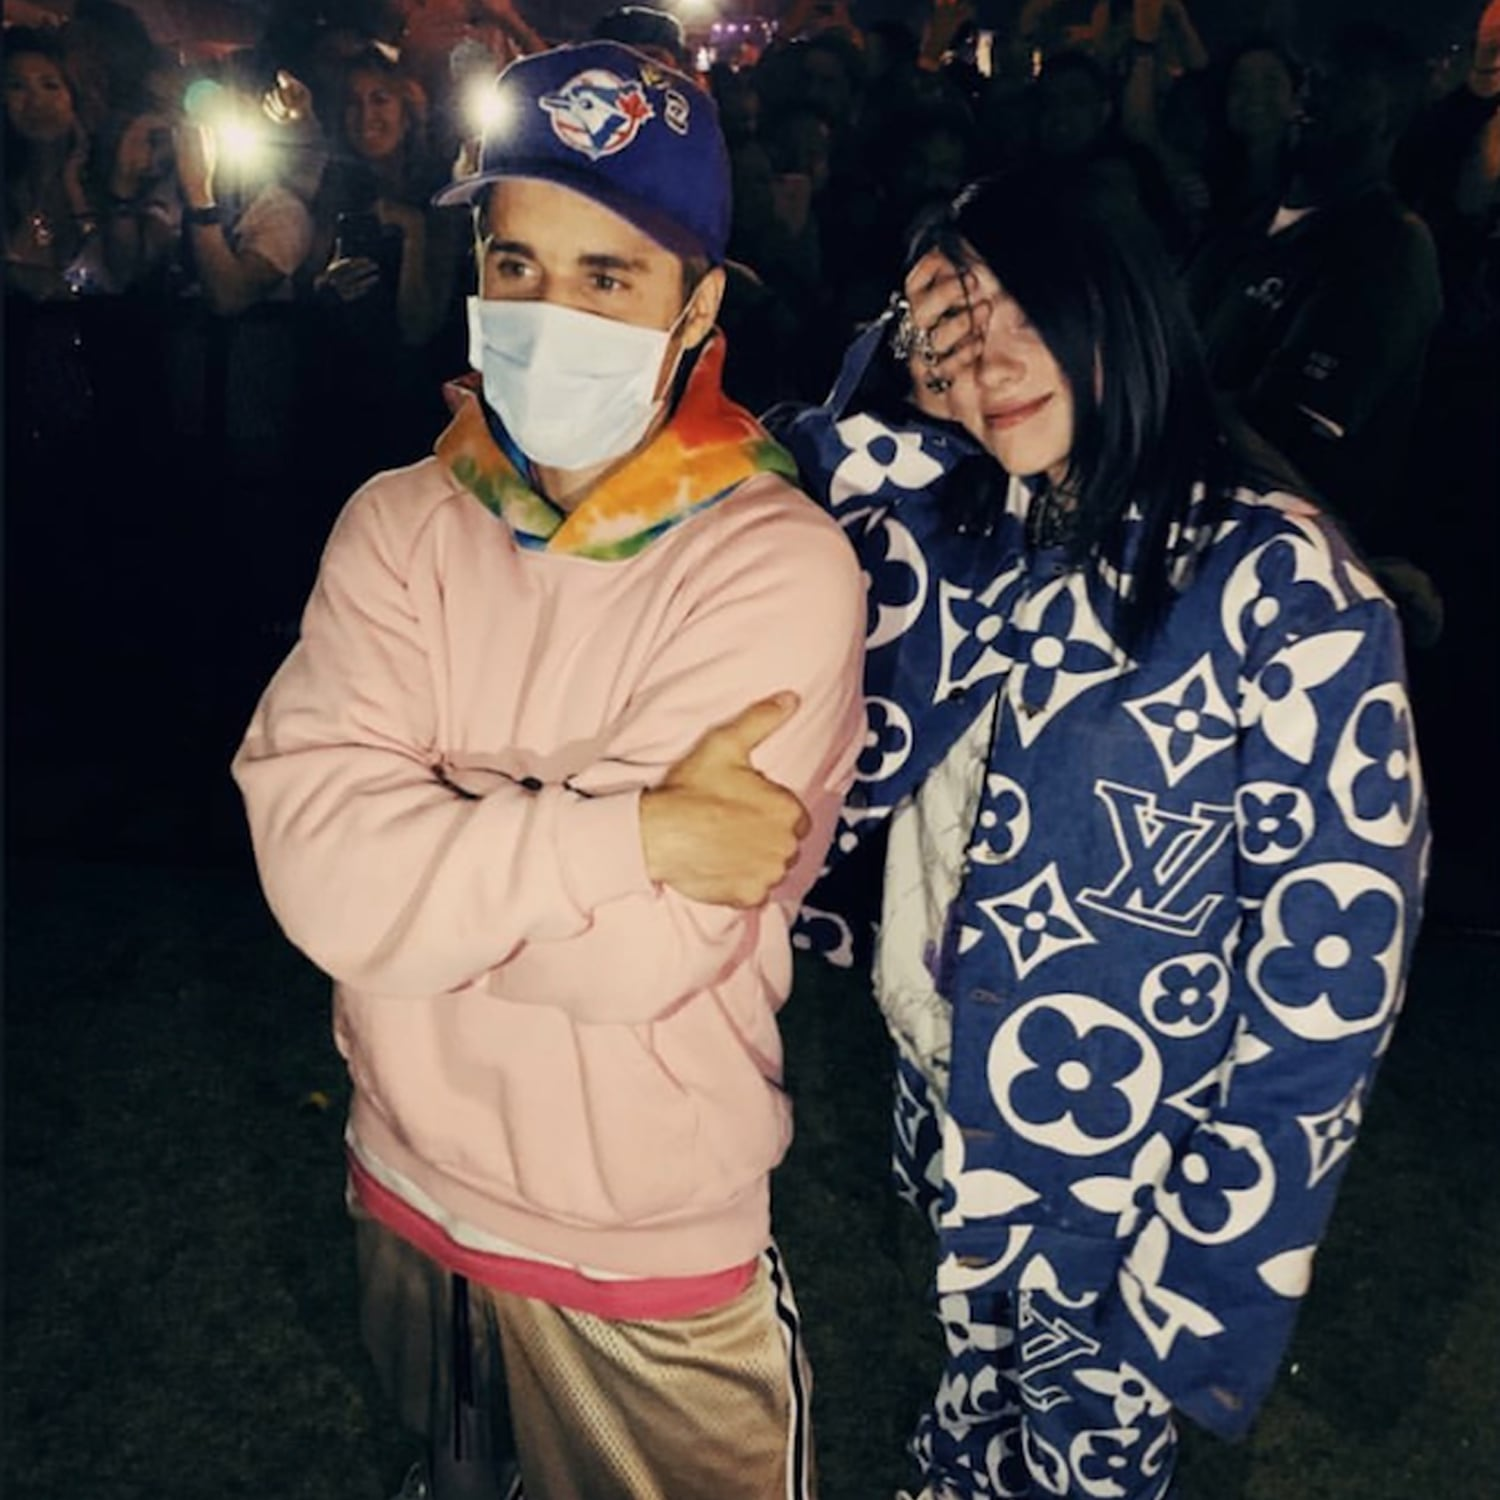 Billie Eilish Meeting Justin Bieber at Coachella 2019 Video